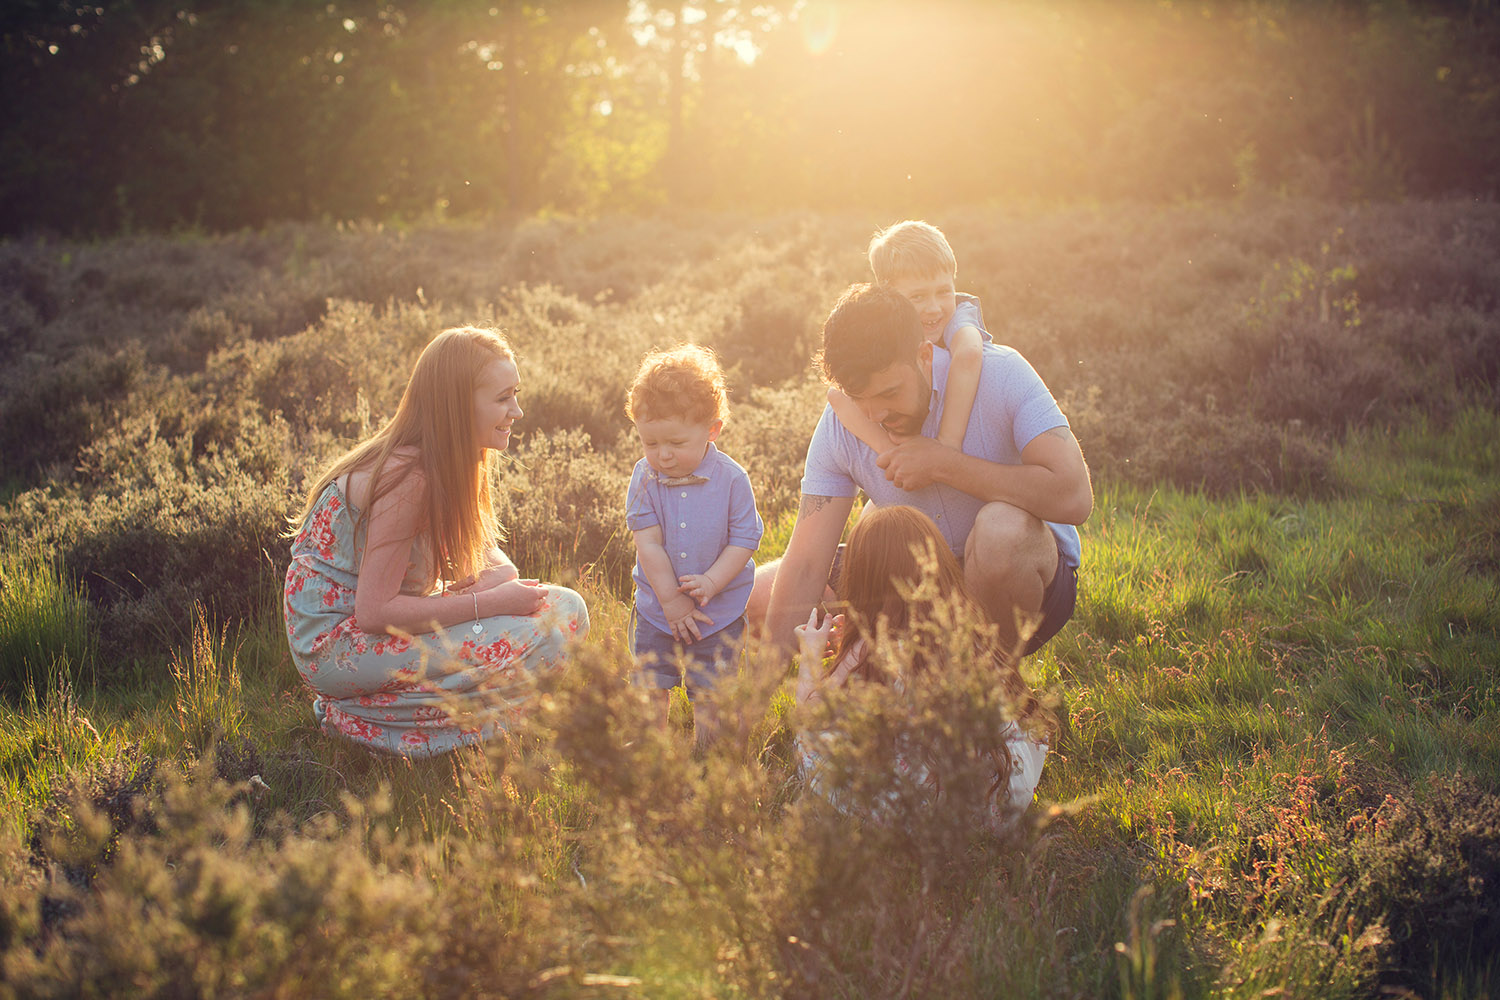 High Wycombe Outdoor Family Photographer 41.jpg